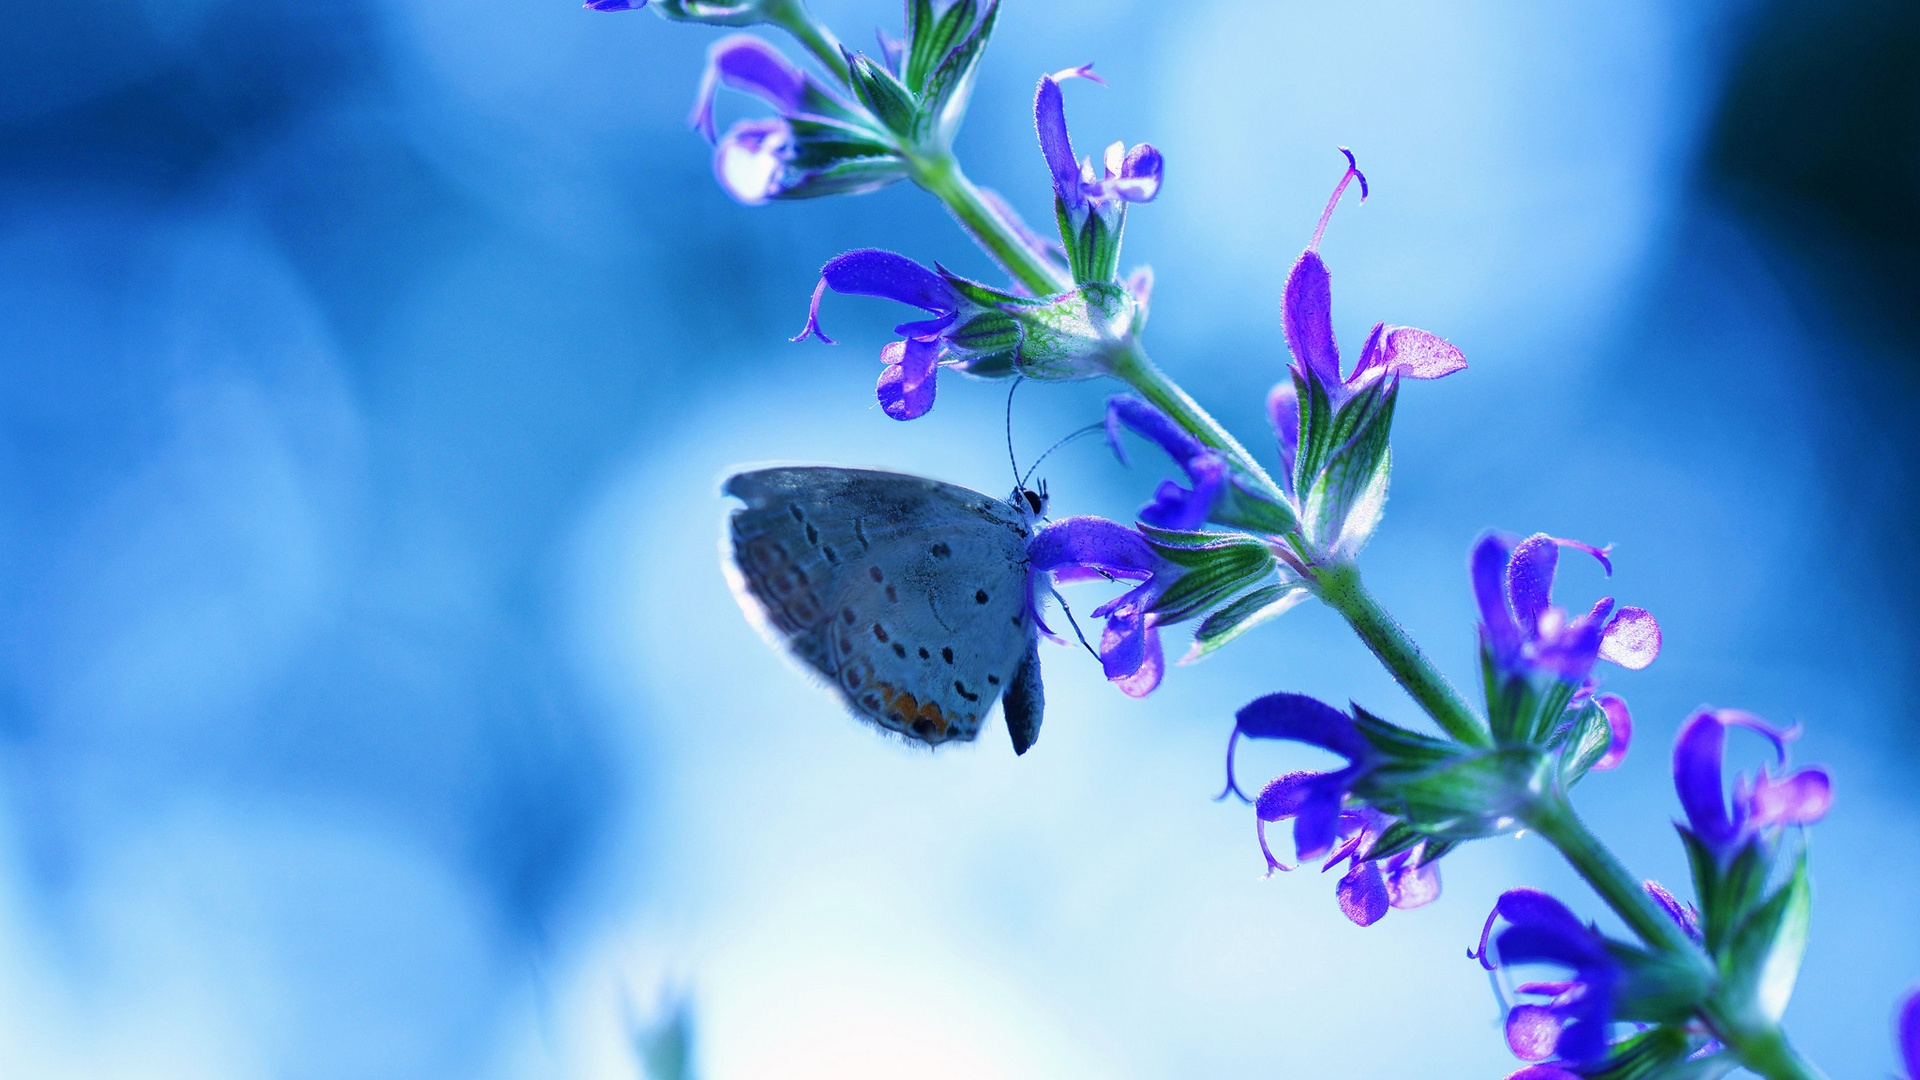 1920x1080 Full HD Wallpaper Flower With Butterfly, Blue Glare